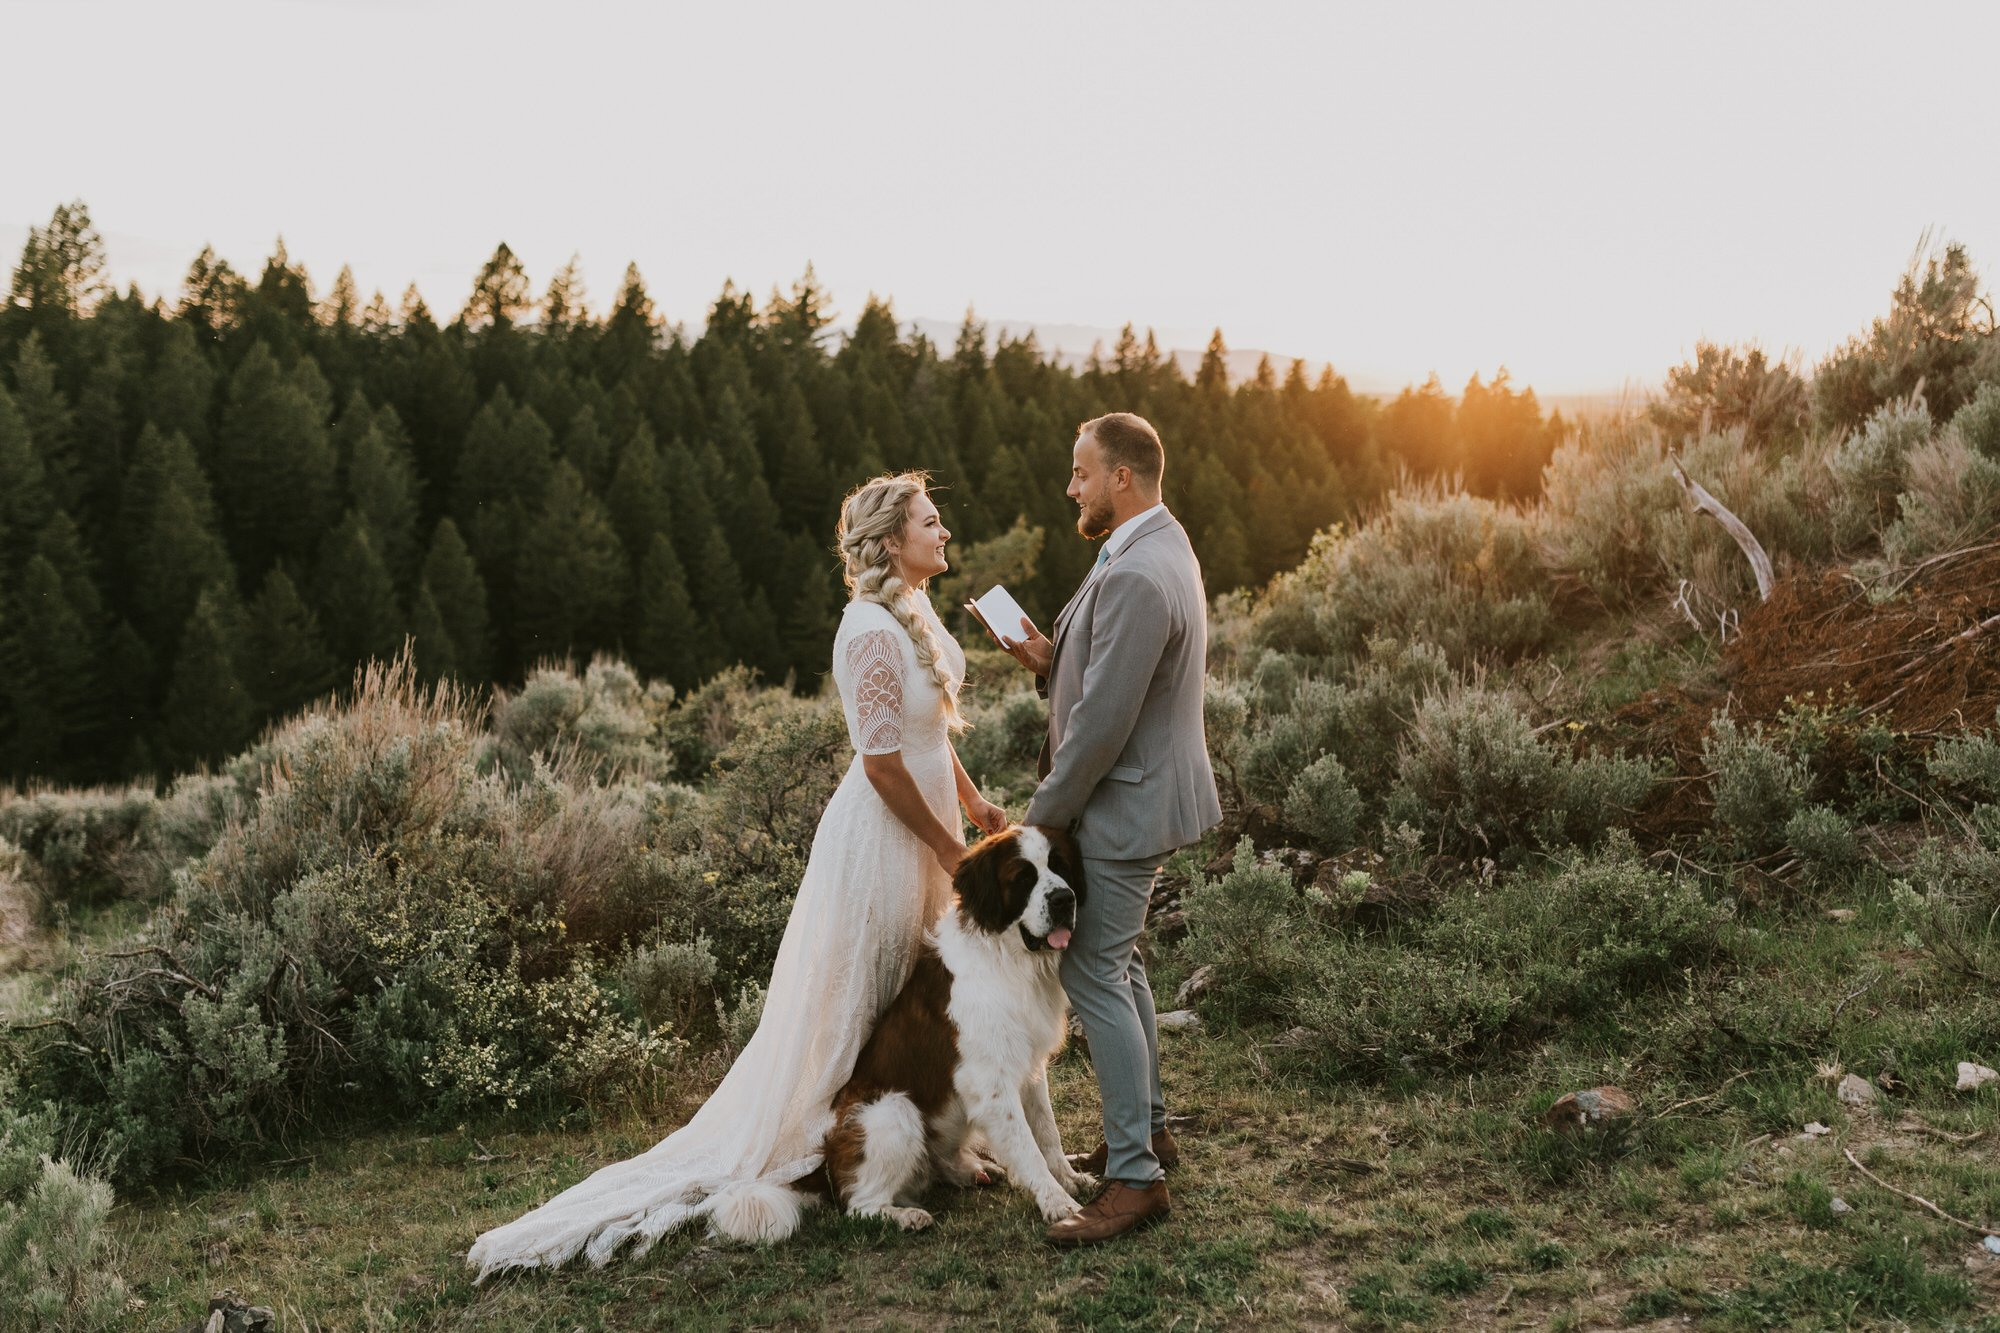 Idaho elopement commitment ceremony with dog